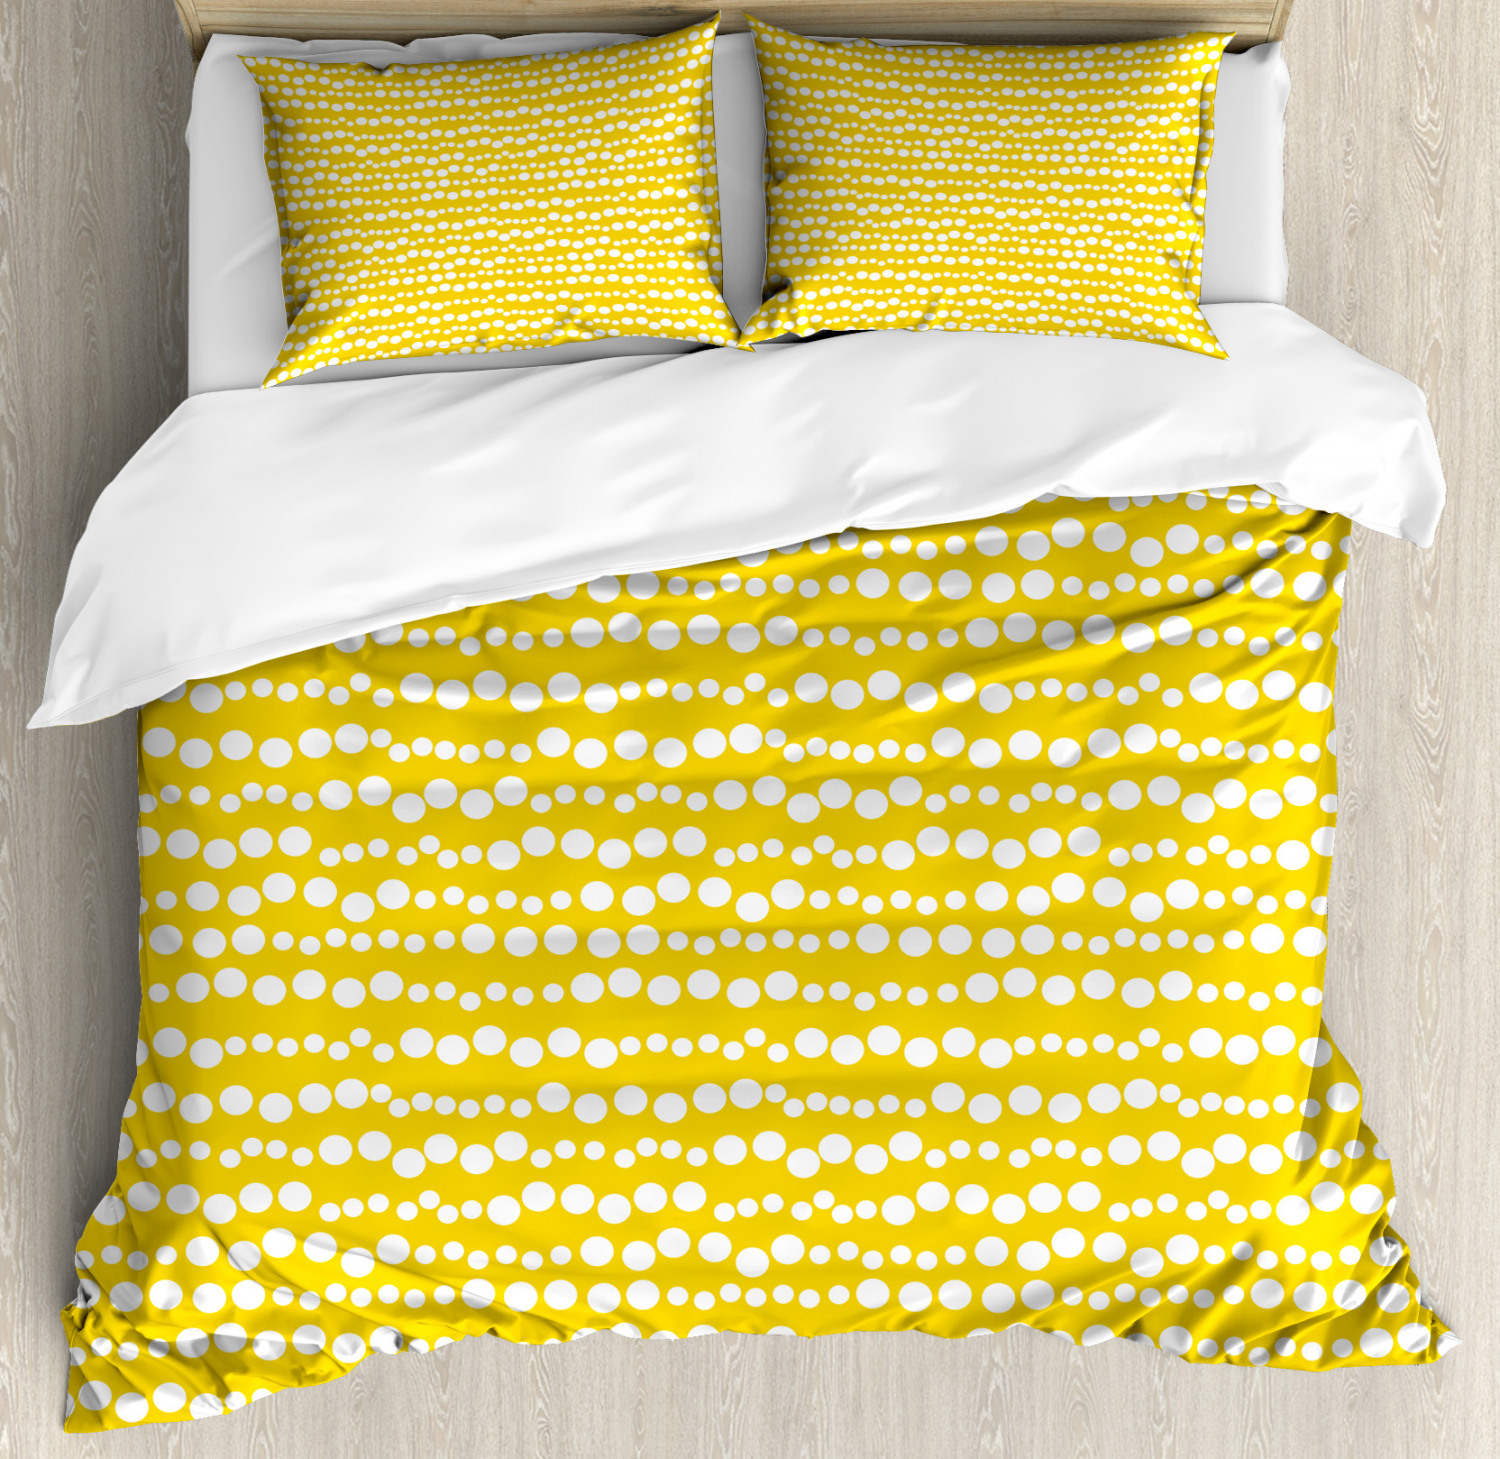 Yellow and White Duvet Cover Set with Pillow Shams Doodle Circles Print